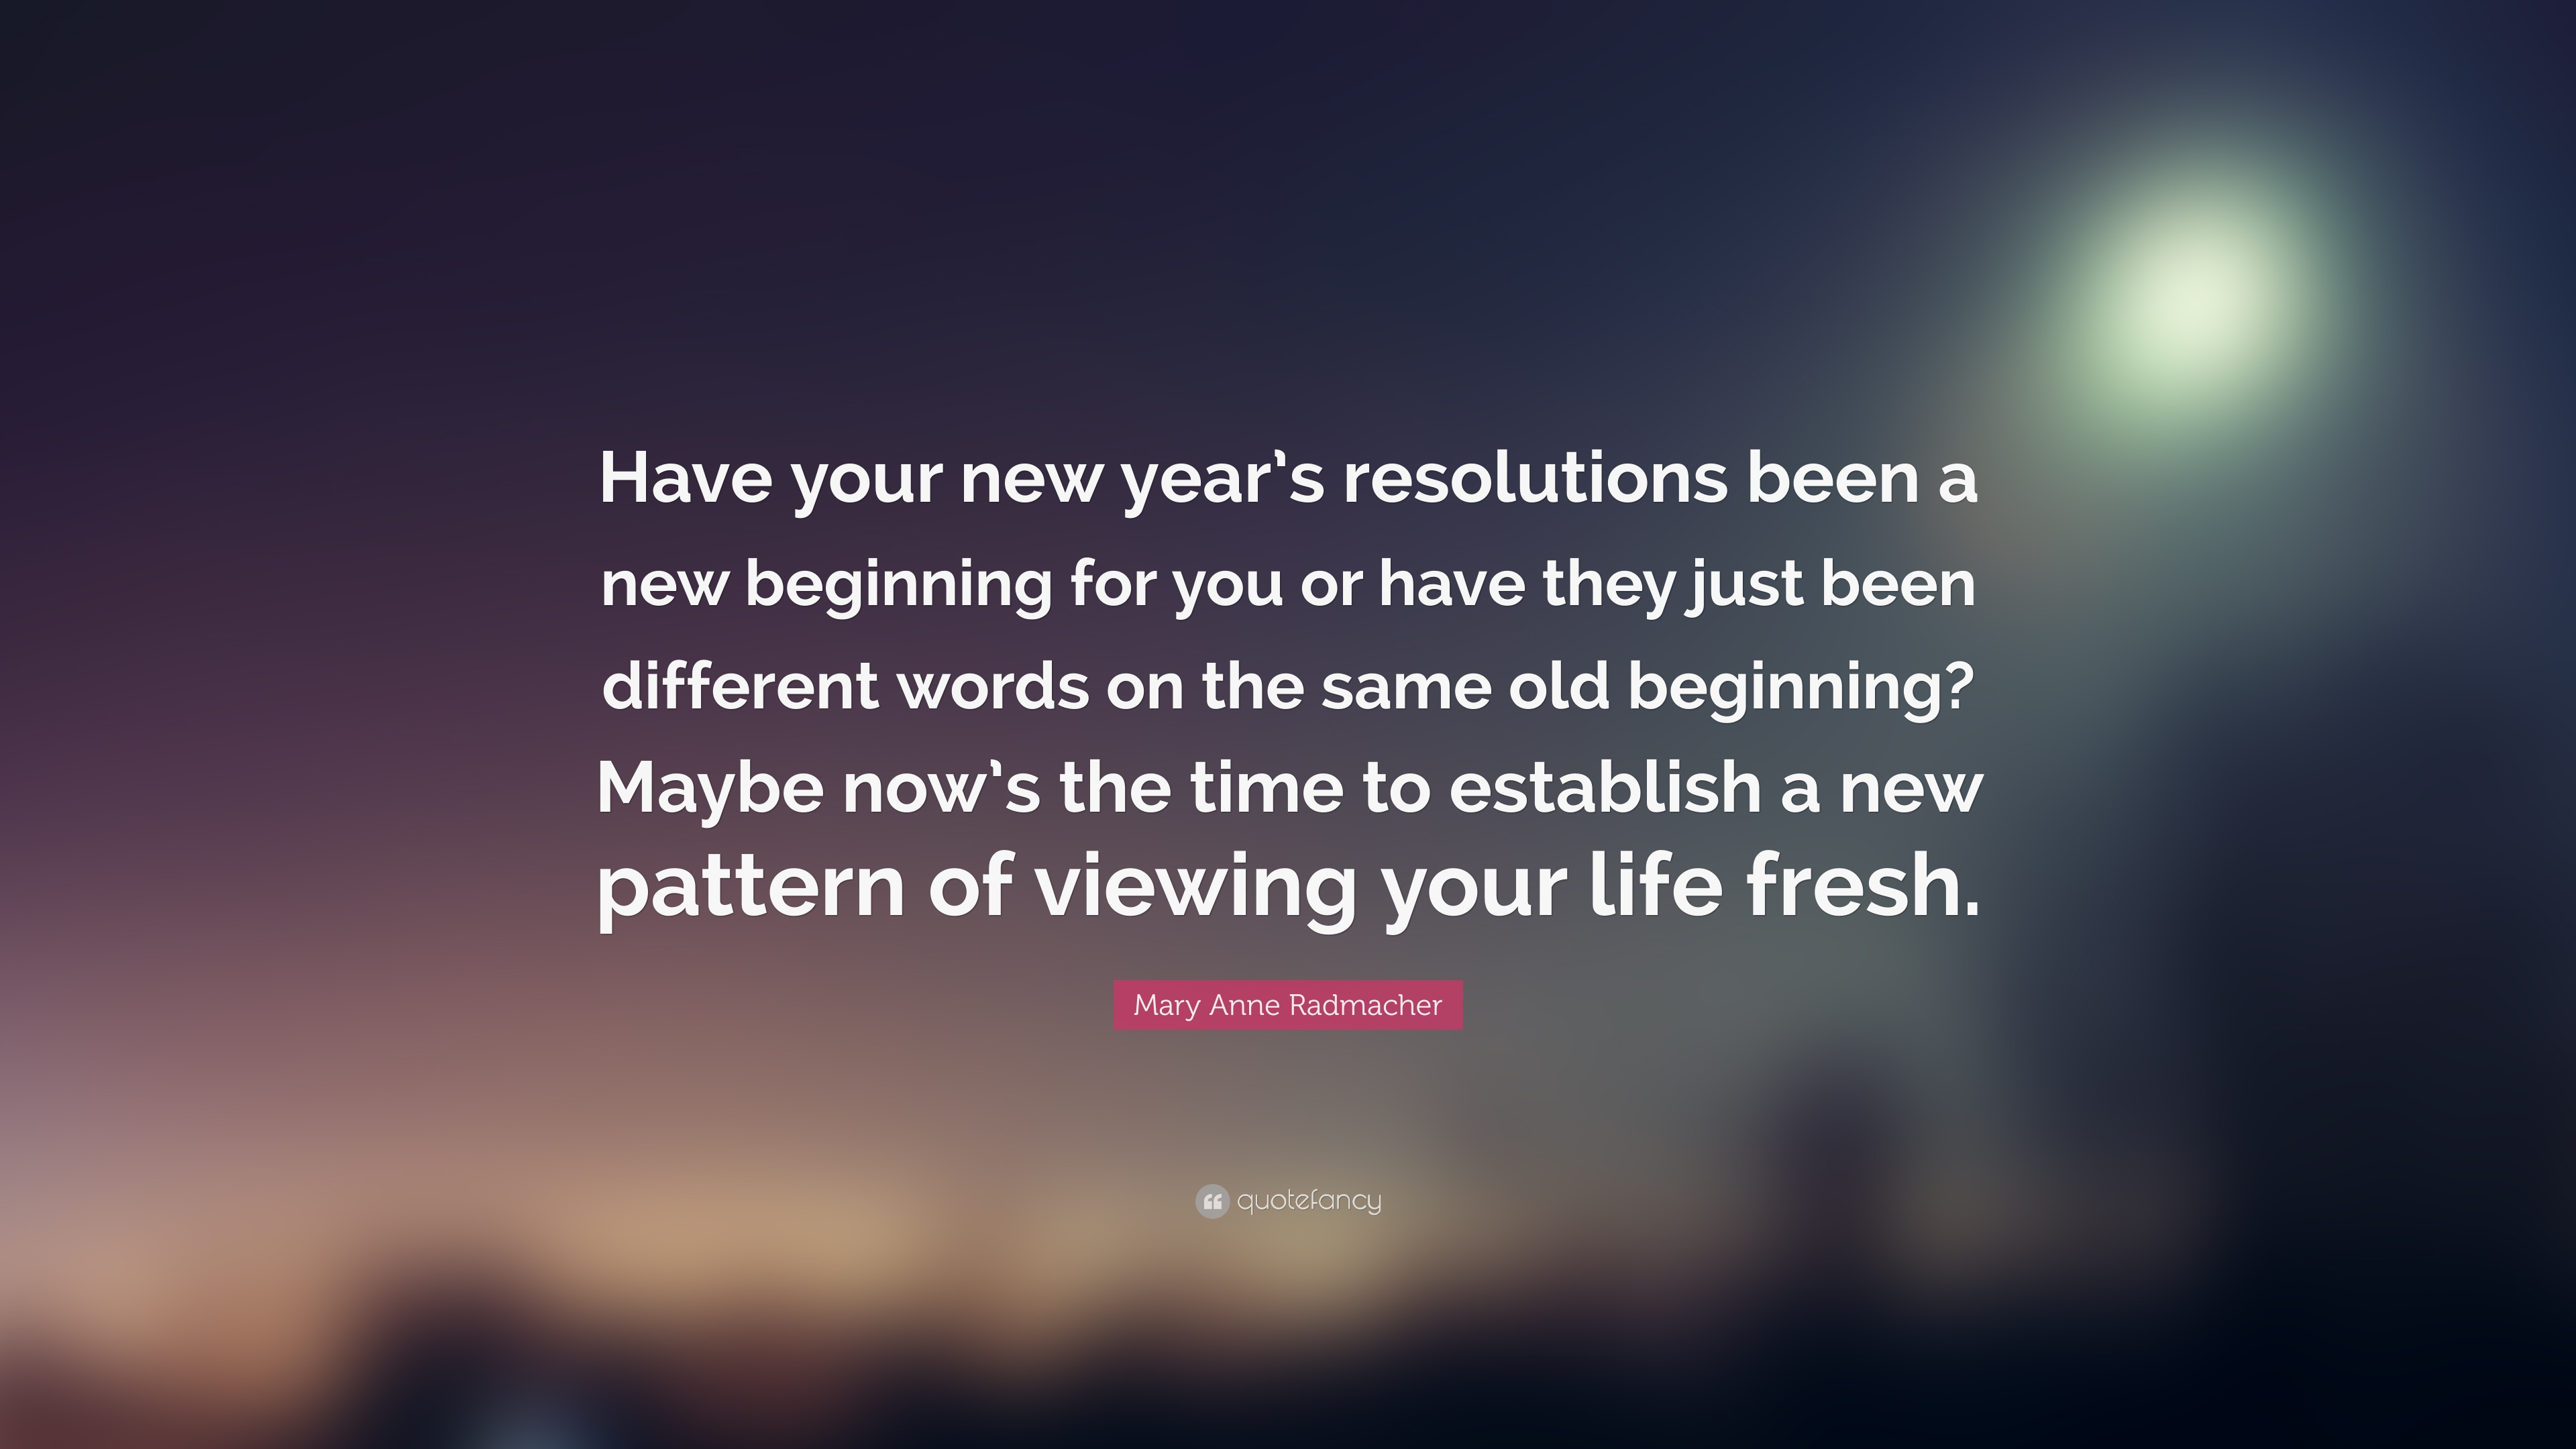 new year quotes have your new years resolutions been a new beginning for you